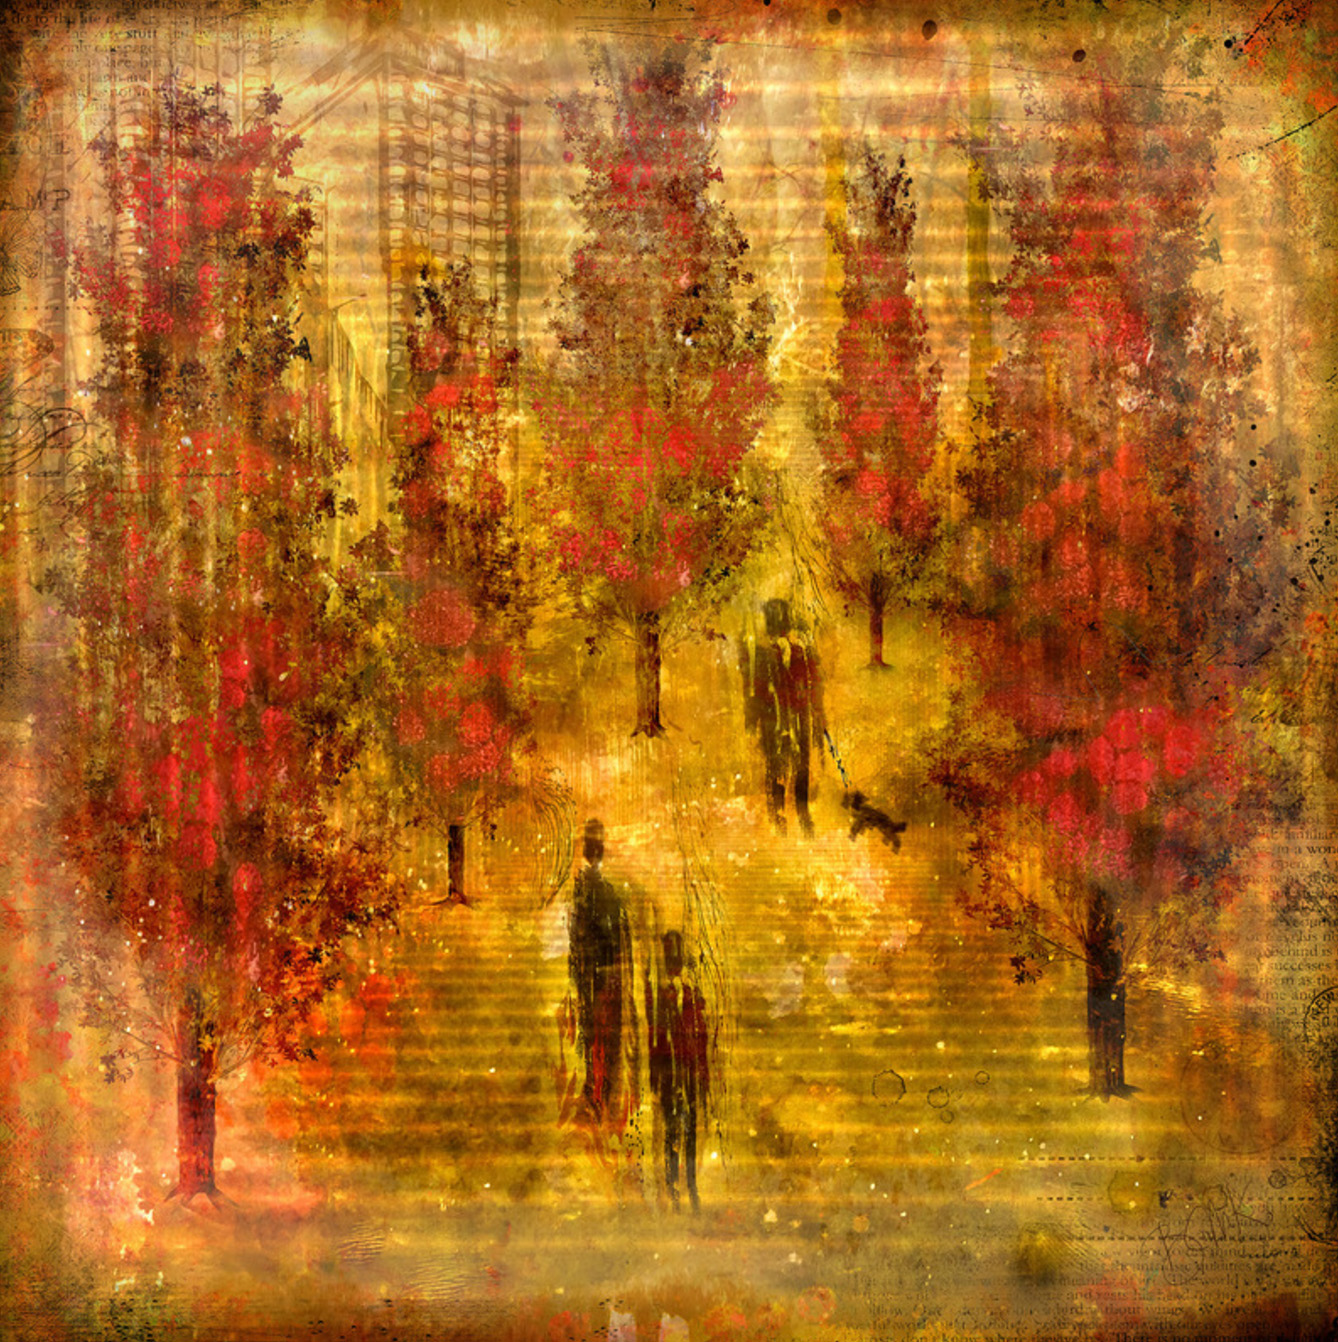 Digital art prints by Barbara Mierau Klein: Walk Among the Red Trees